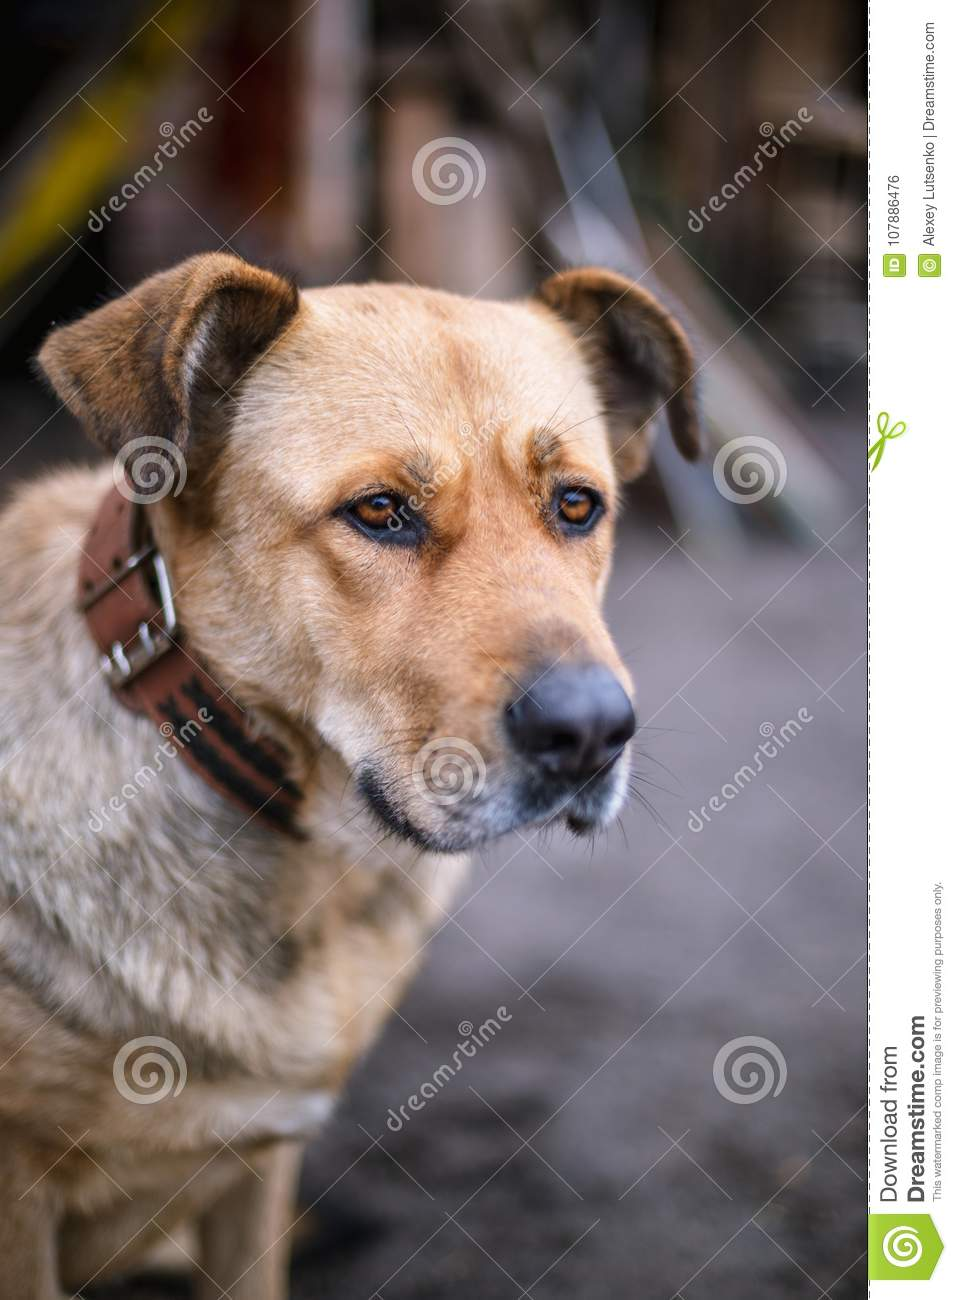 Portrait Of A Big Beautiful Dog With A Collar On A Leash Stock